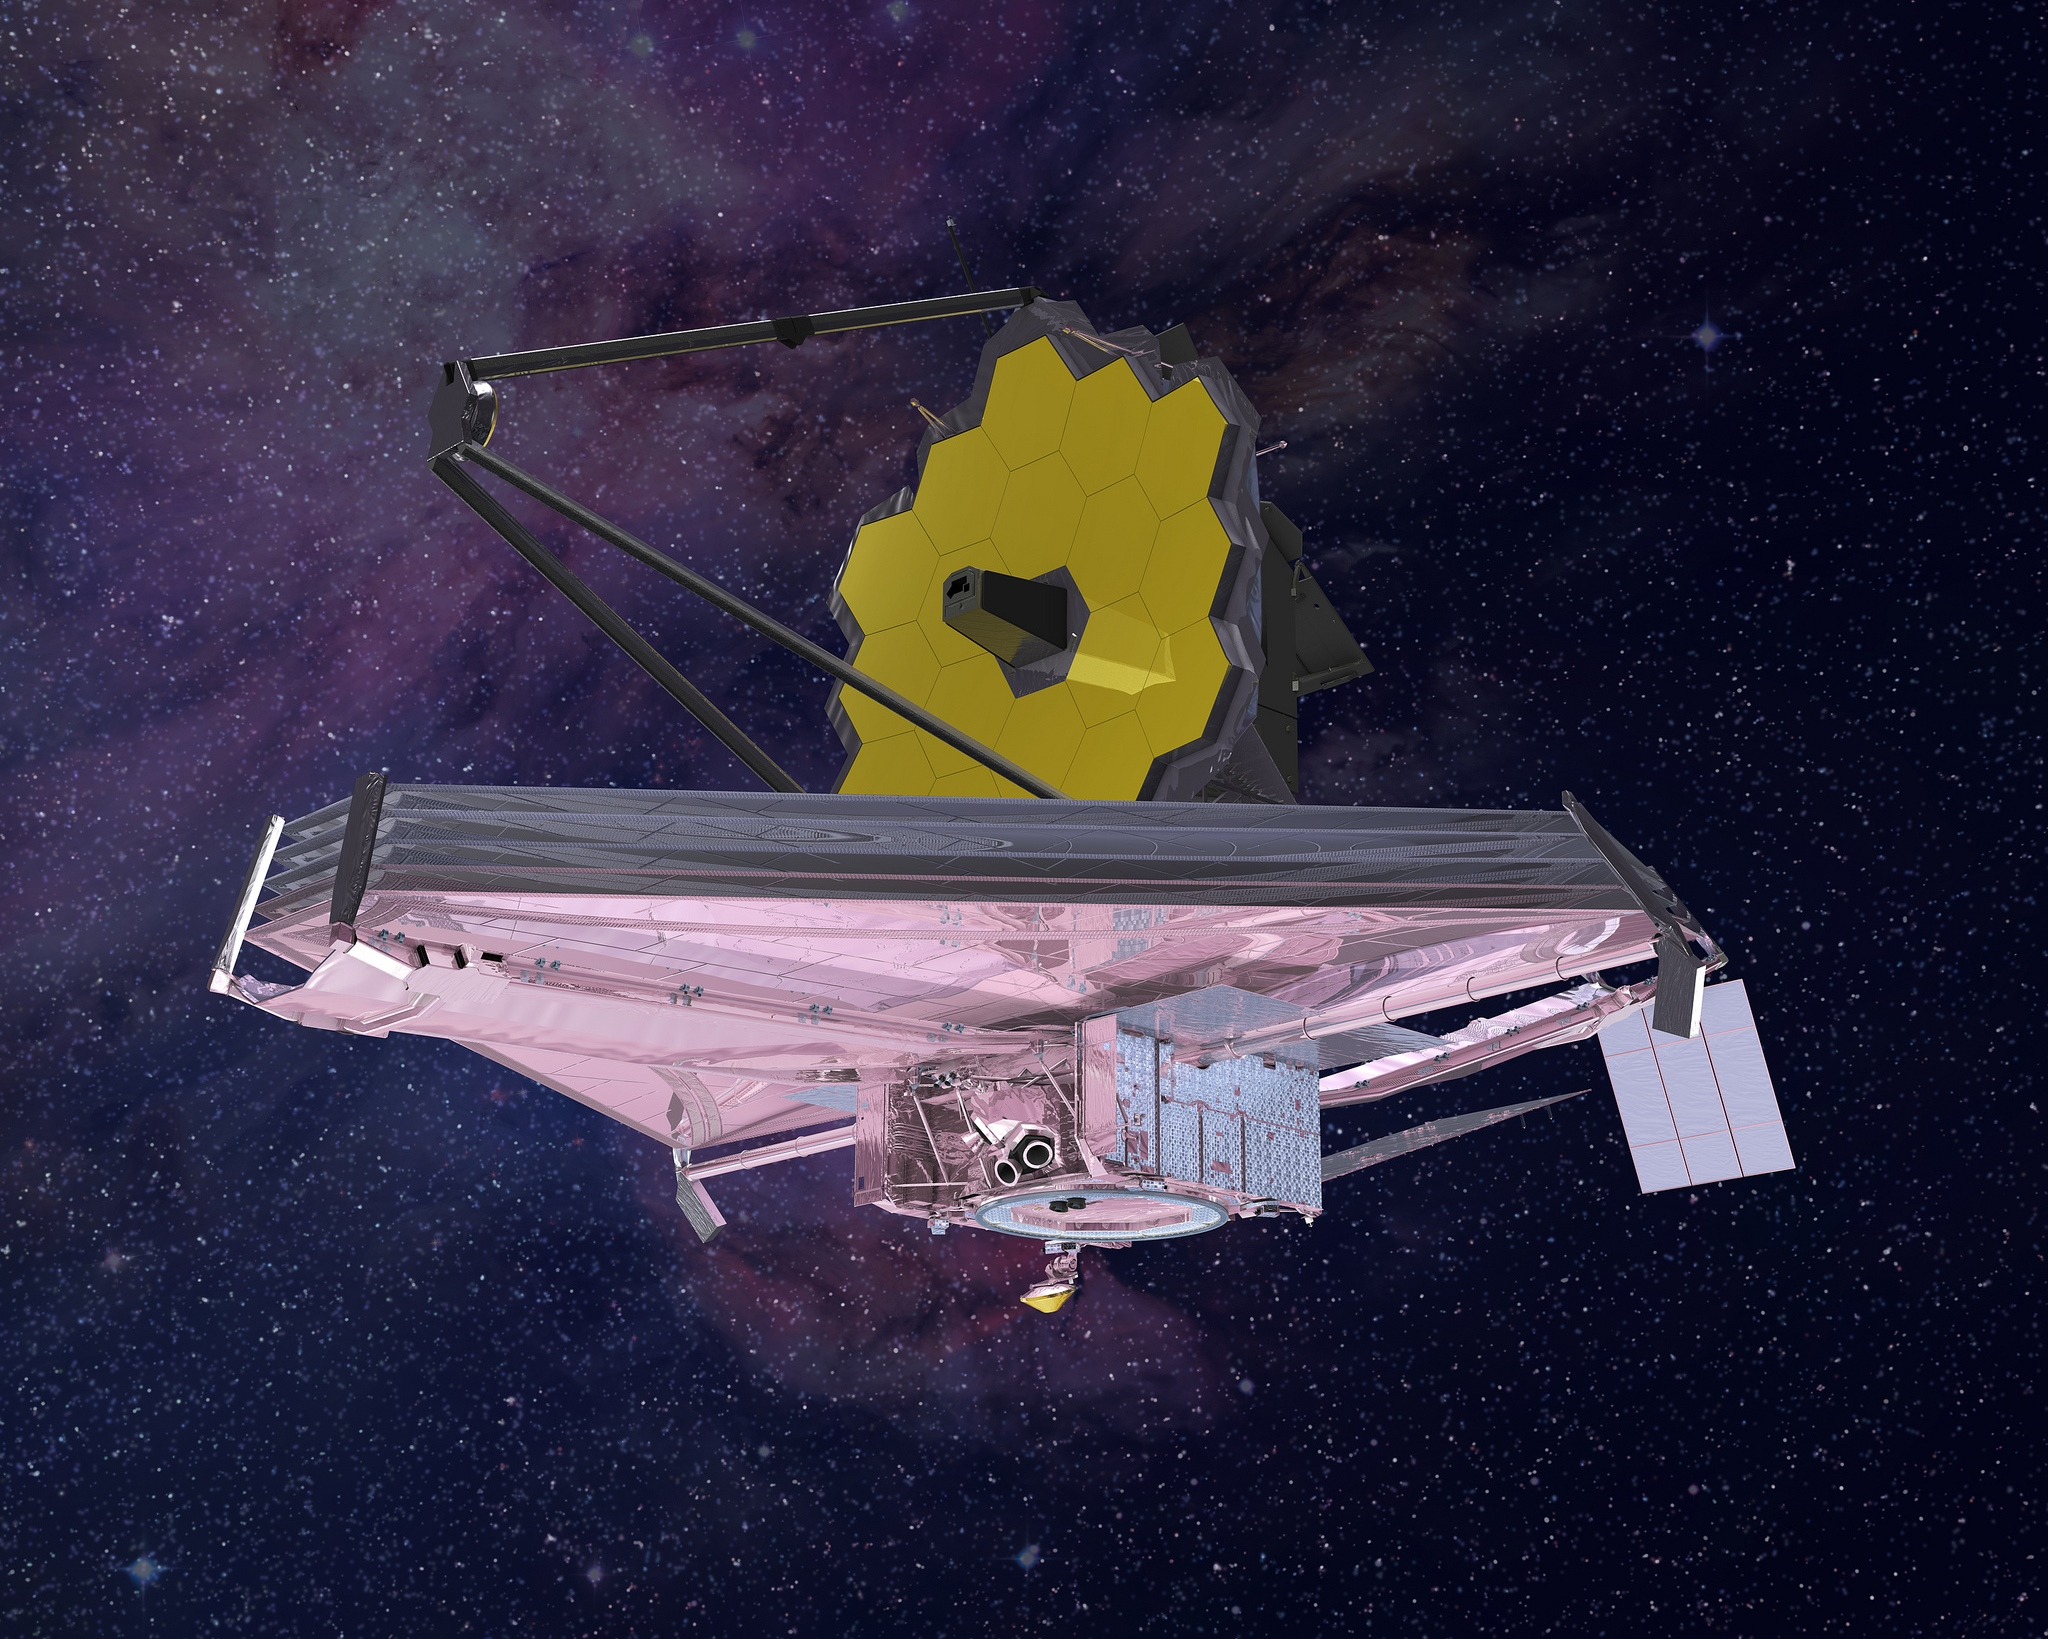 James Webb Space Telescope: Influence at the speed of light